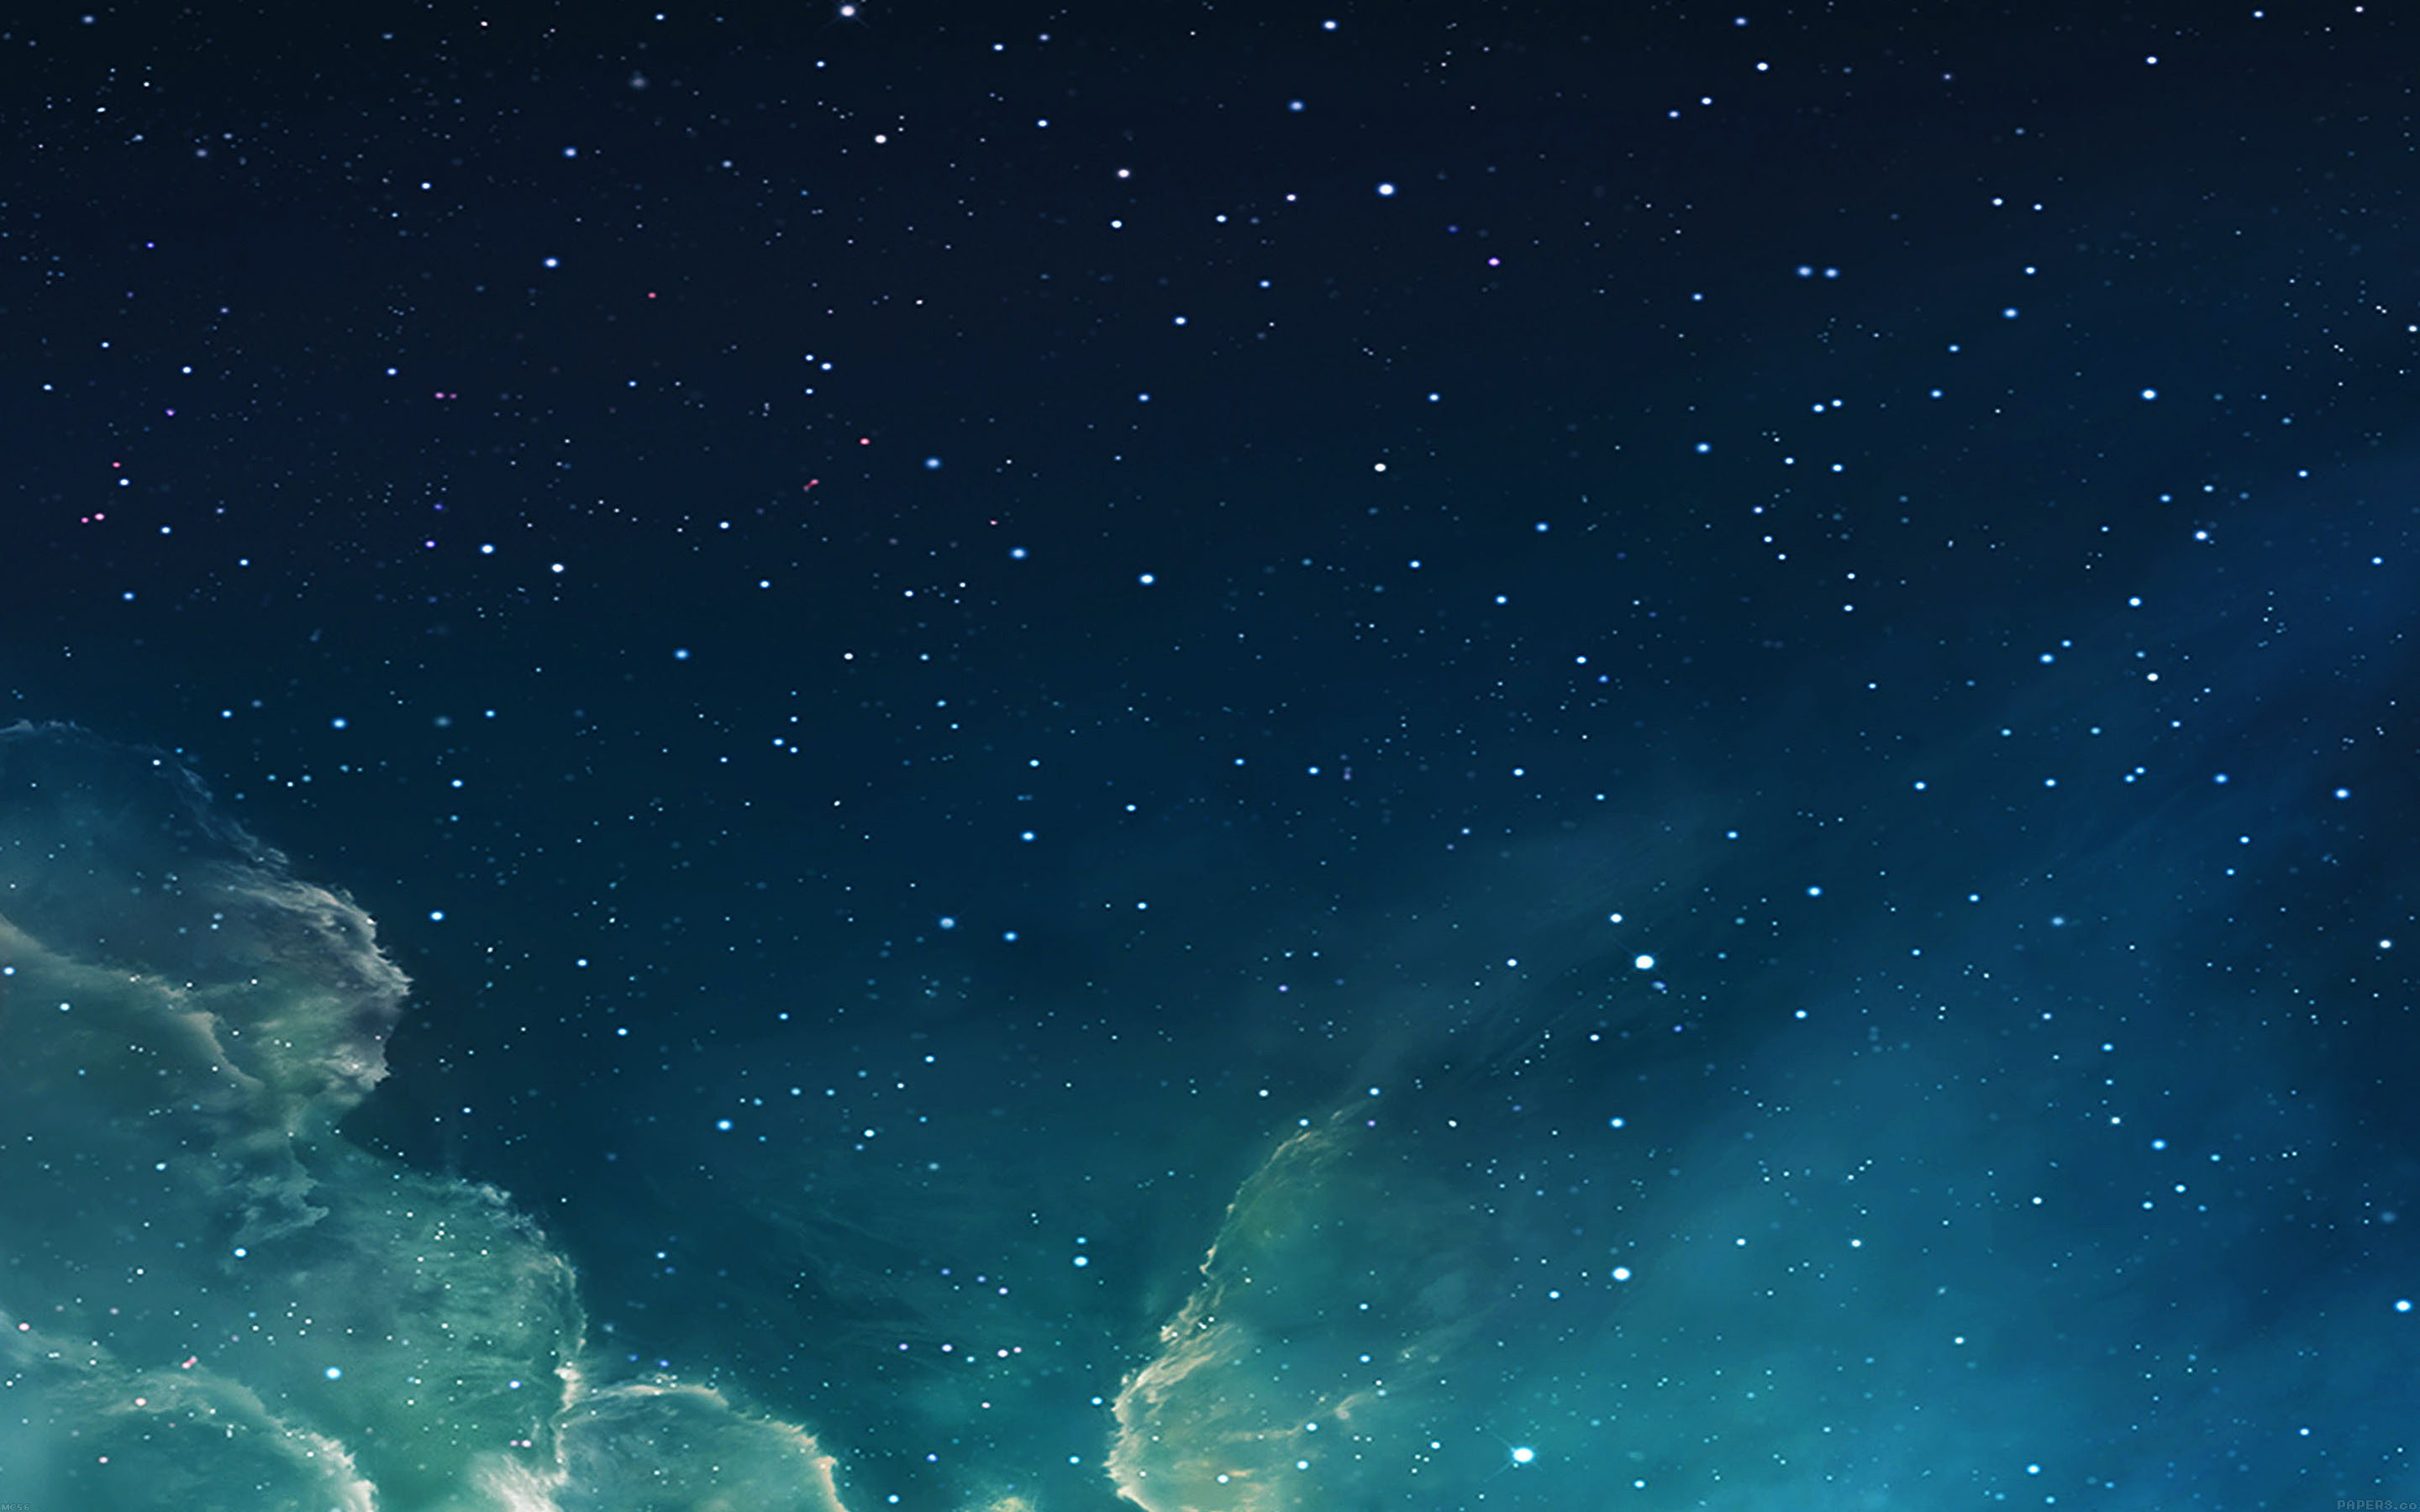 Starry sky background 57 images - Star night wallpaper ...